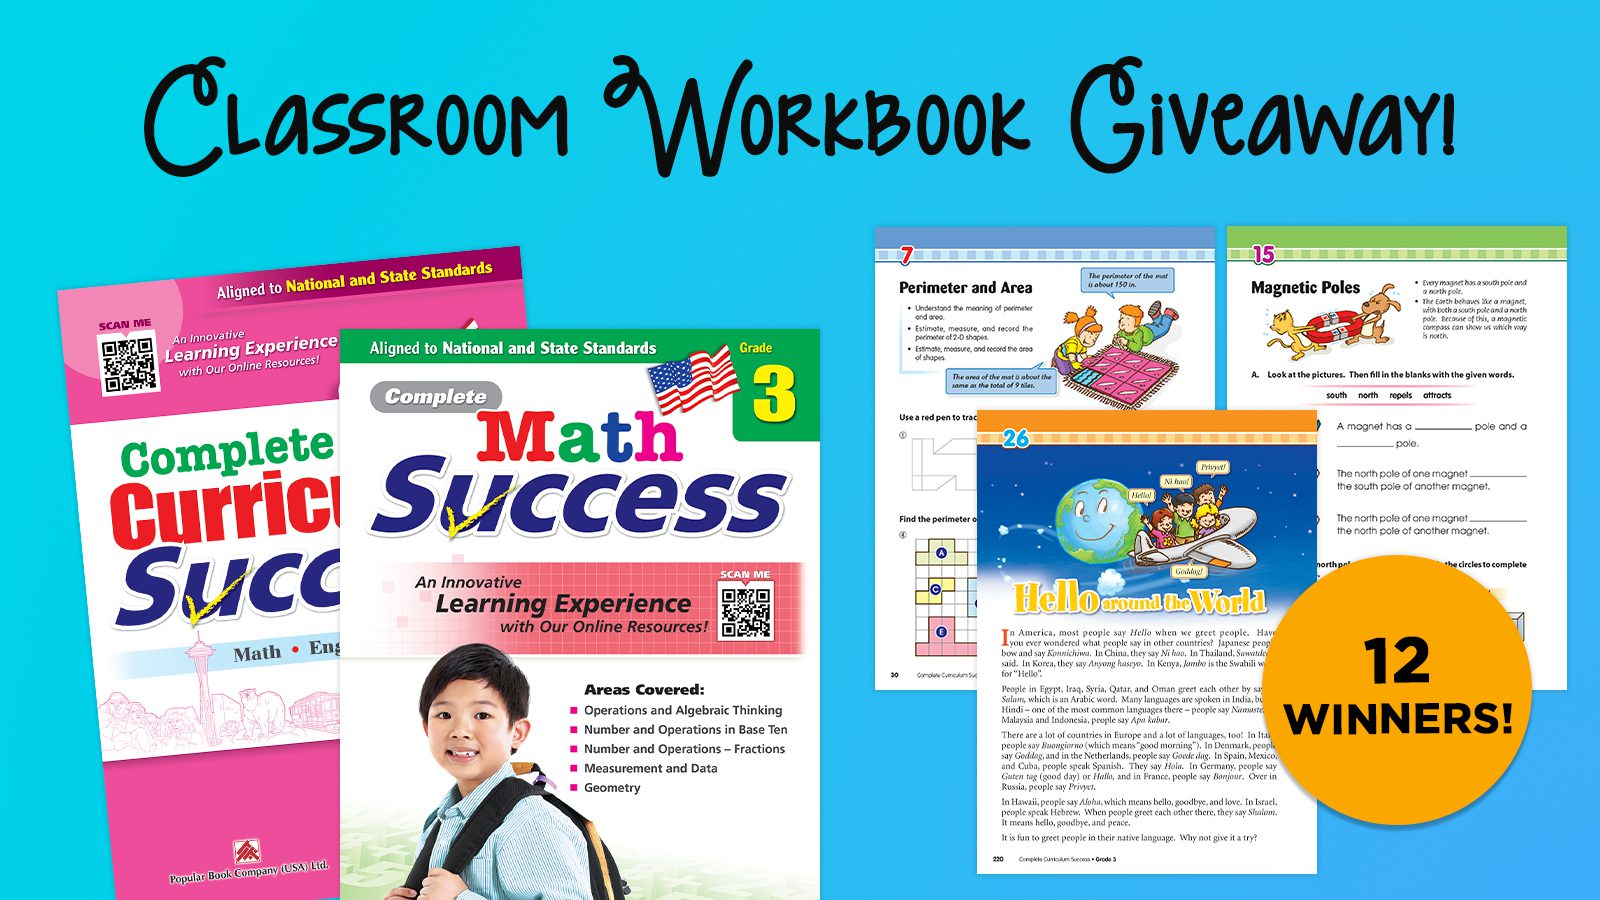 Classroom Set of Math or Curriculum Workbooks Giveaway